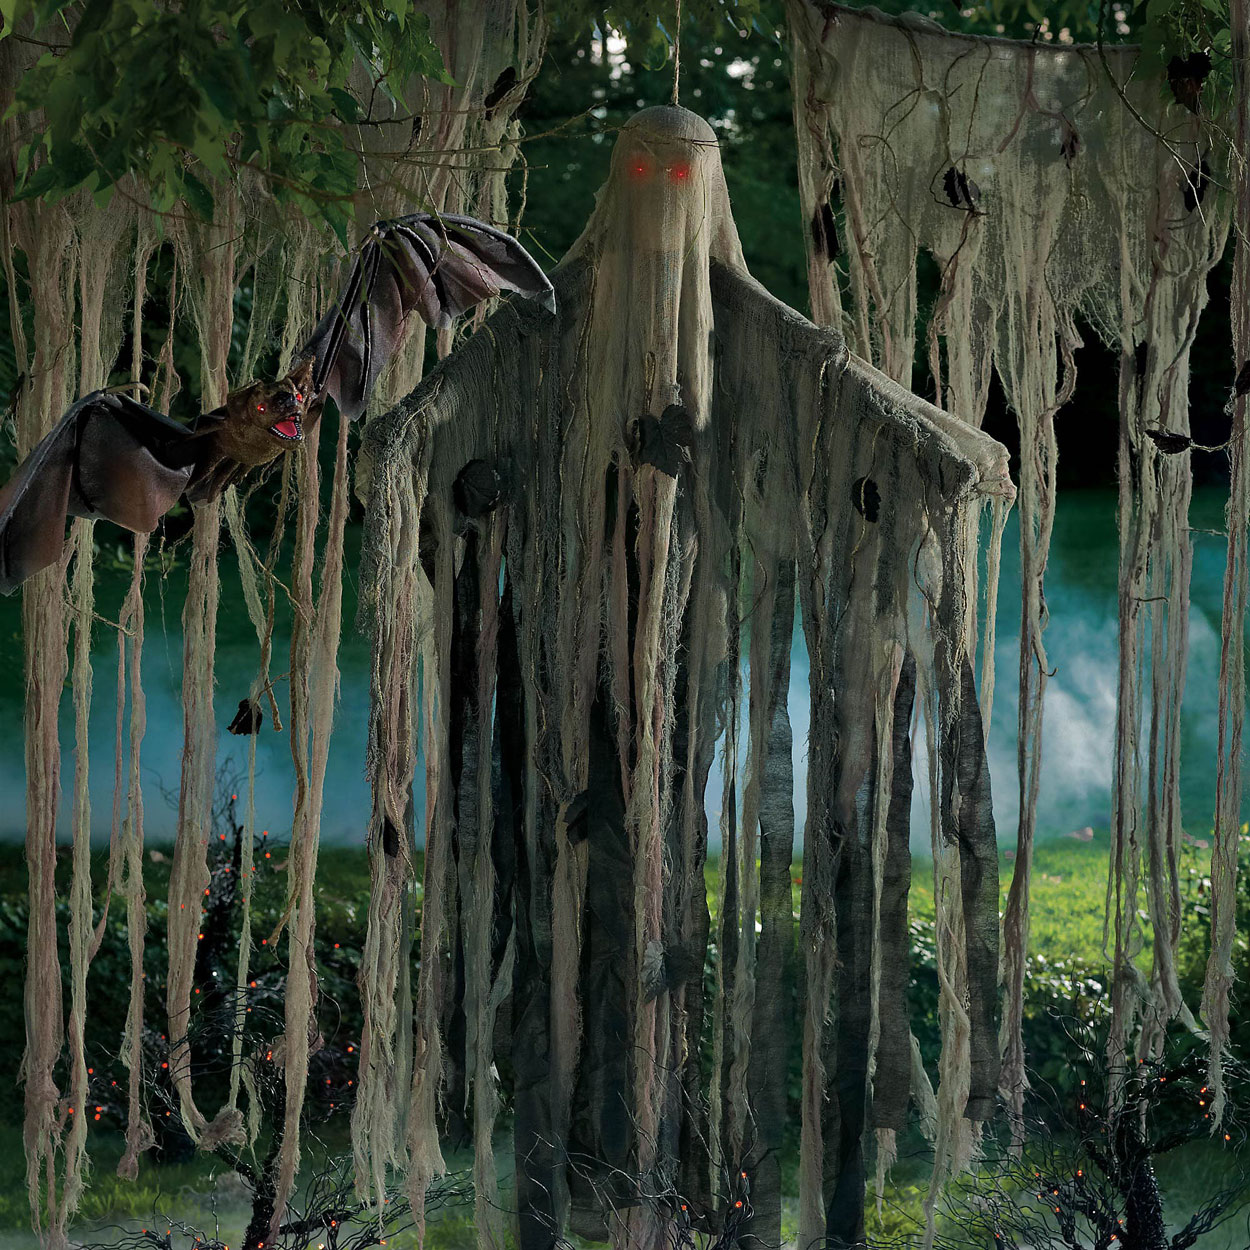 https://i0.wp.com/www.thegreenhead.com/imgs/hanging-swamp-man-1.jpg